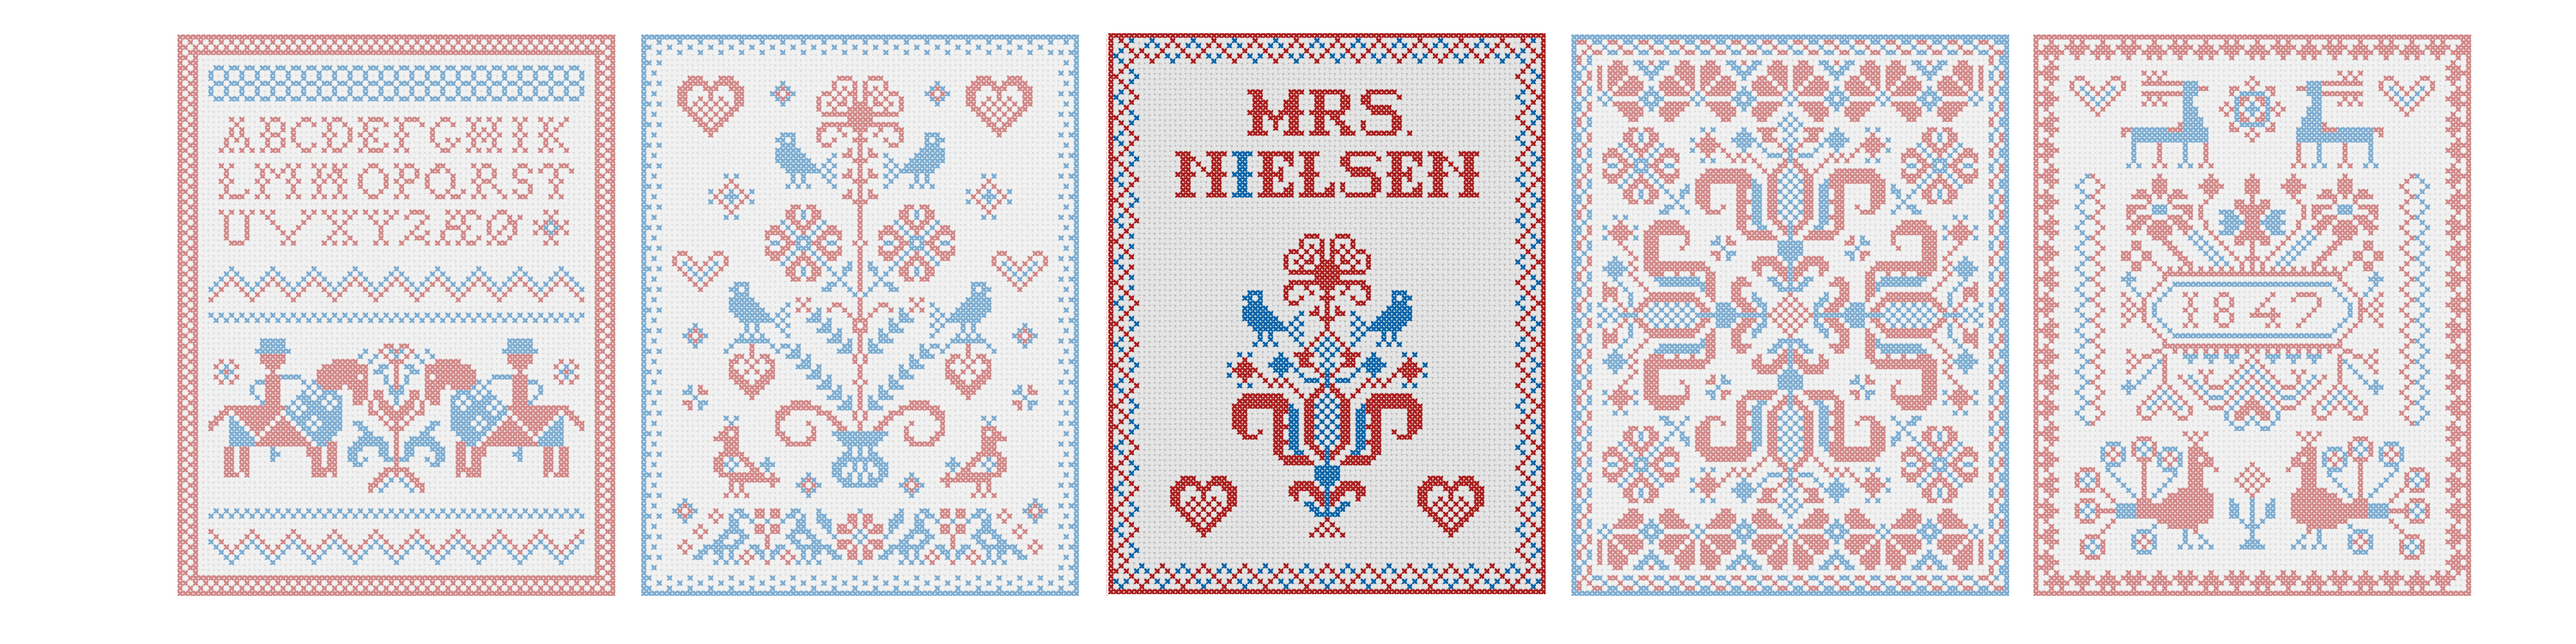 Scandinavian Embroidery Patterns Mrs Nielsen Embroidery Scandinavian Cross Stitch Embroidery Patterns